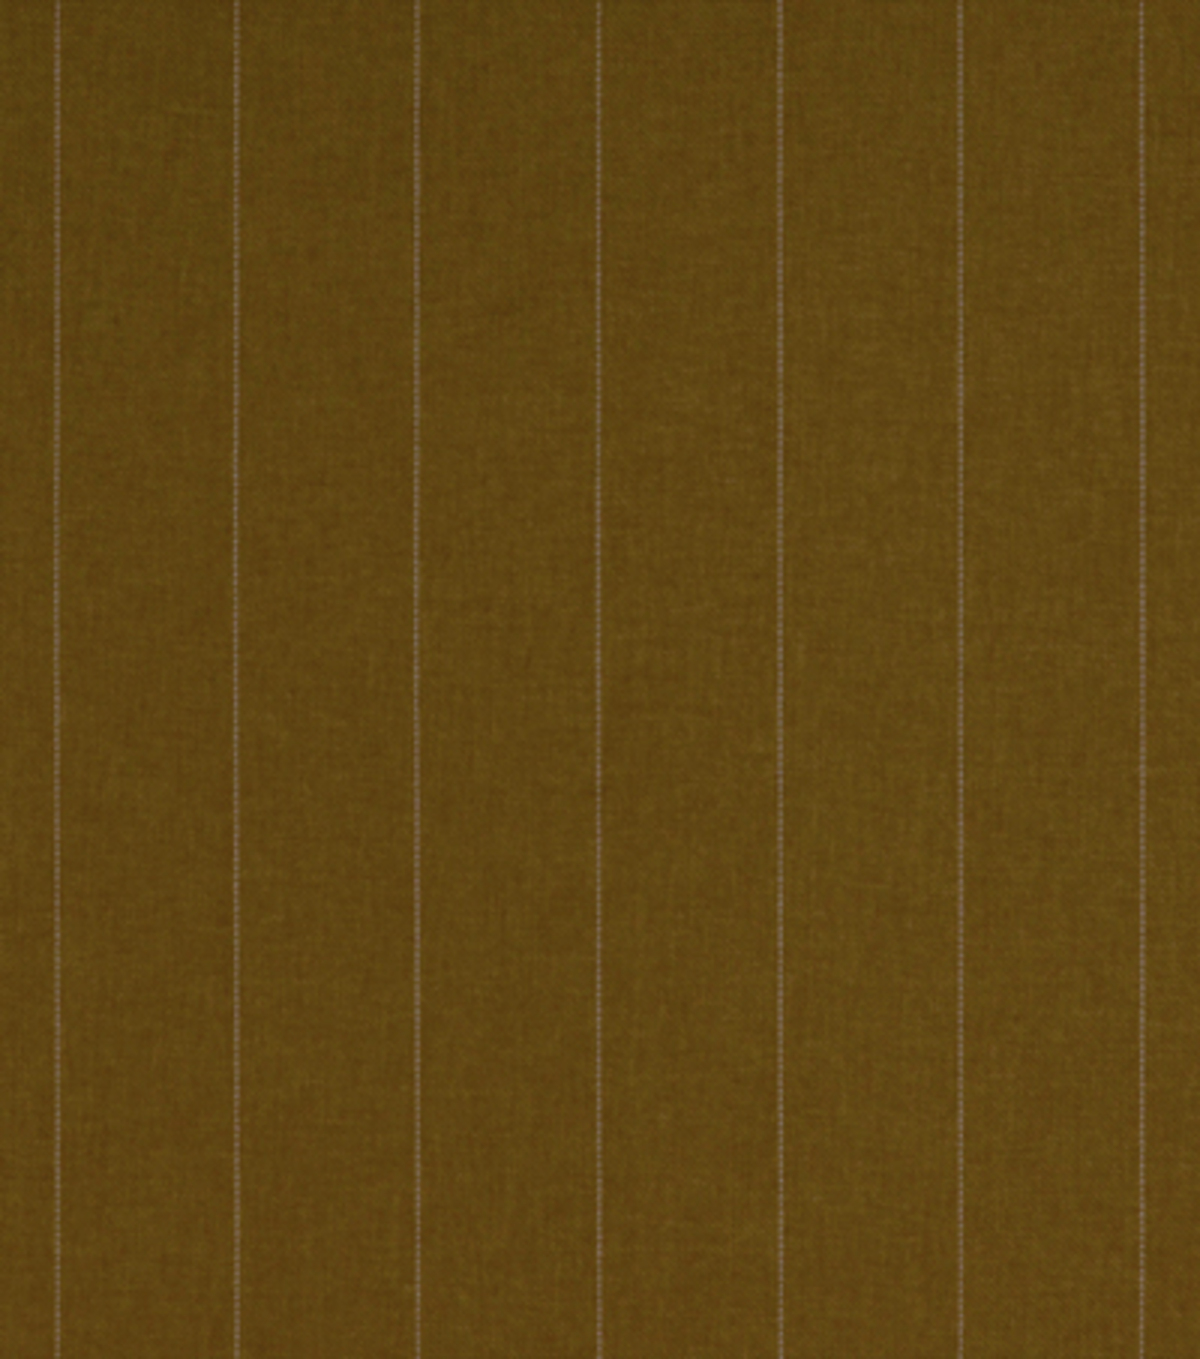 Home Decor 8\u0022x8\u0022 Fabric Swatch-Covington Armani 881 Vinatge Gold